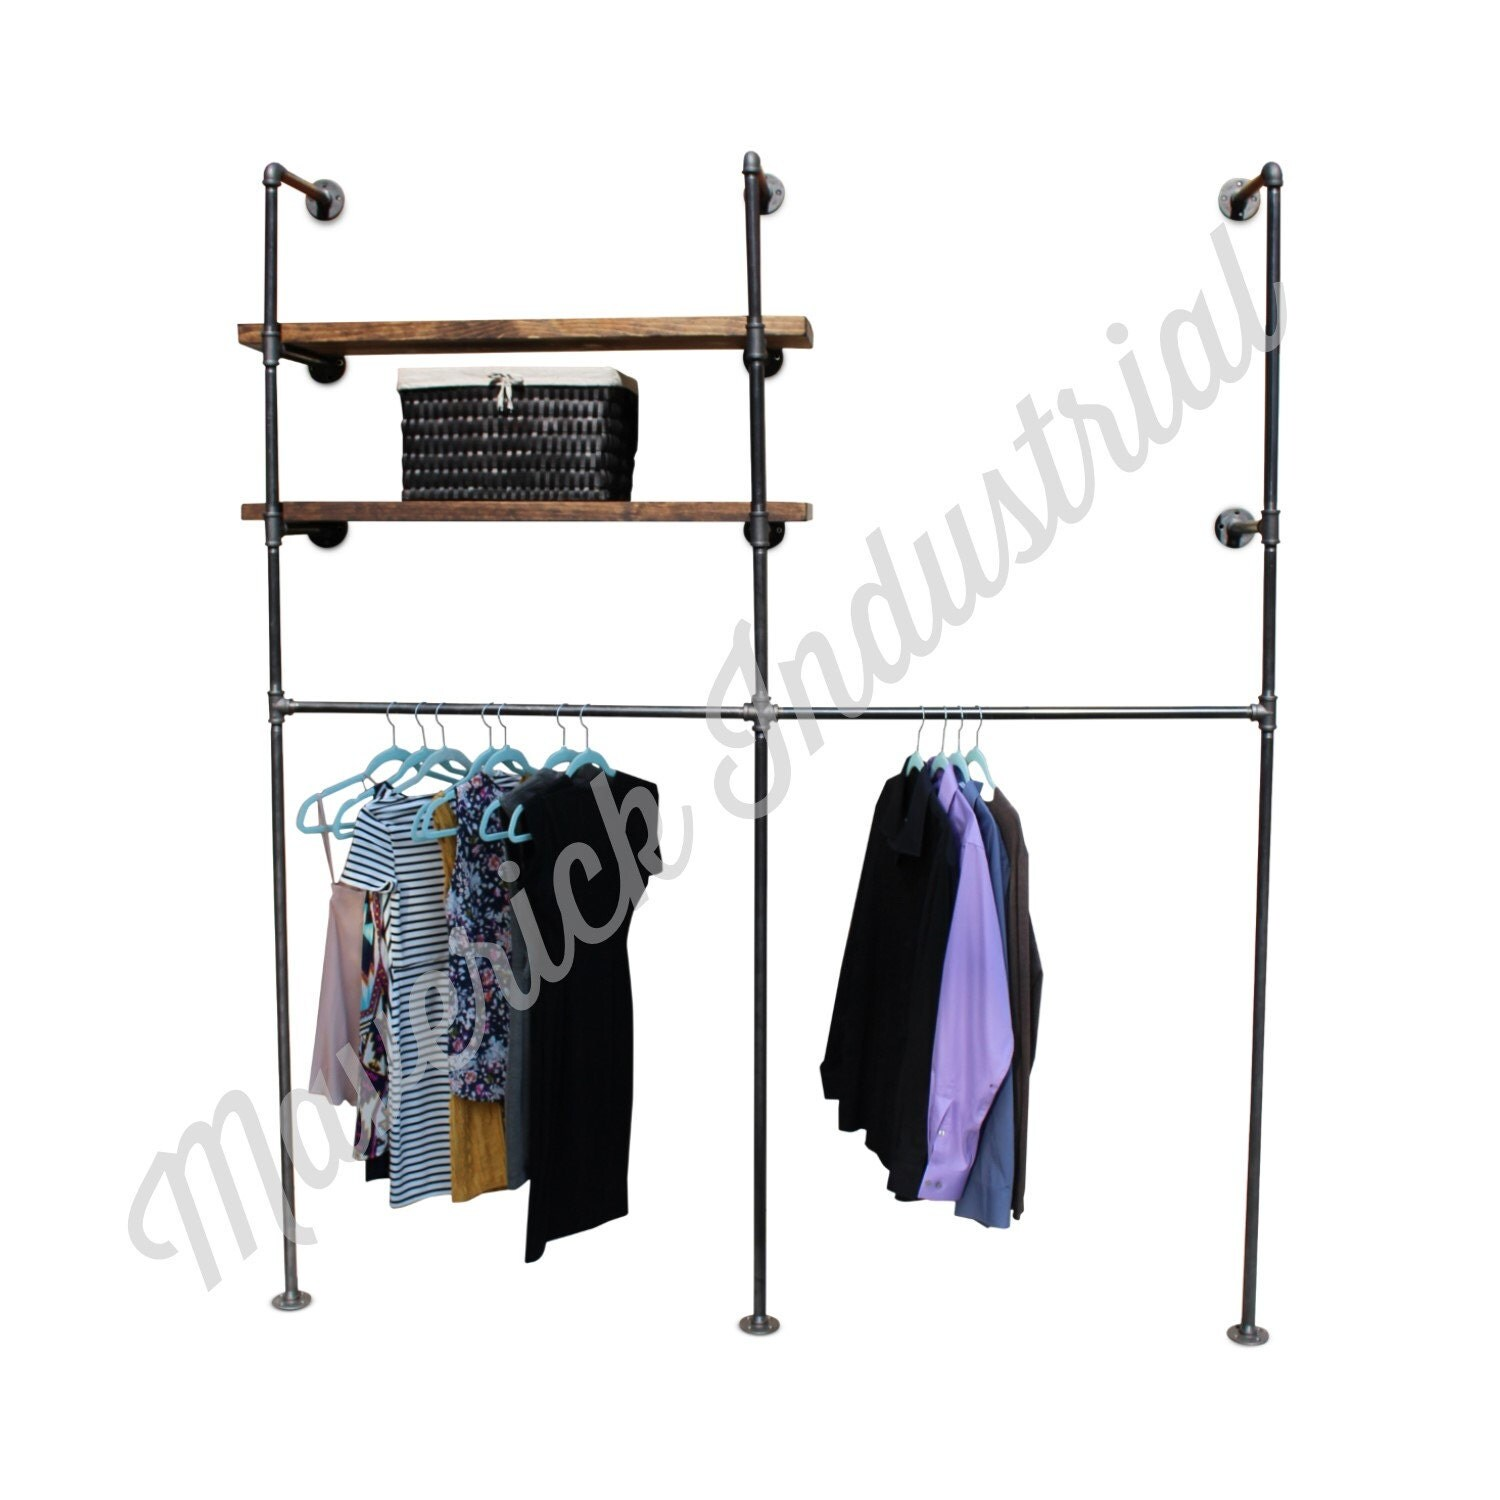 Wall Mounted Retail Fixtures : Industrial Retail Wall Display Wall Mounted Clothes Rack